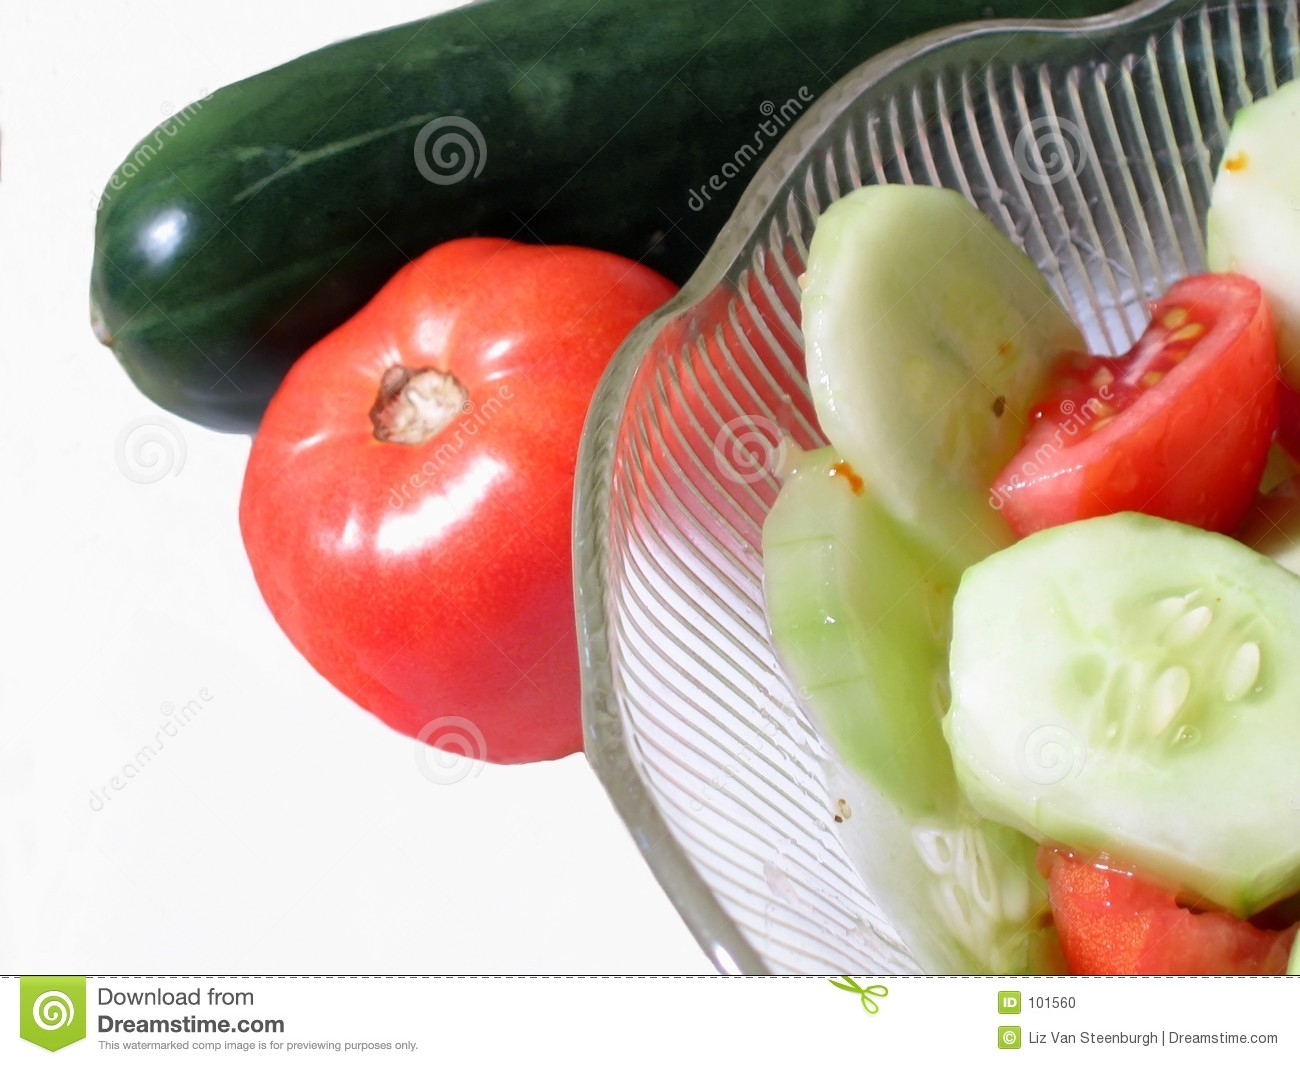 Download Tomato & Cucumer stock photo. Image of green, bowl, vegetable - 101560